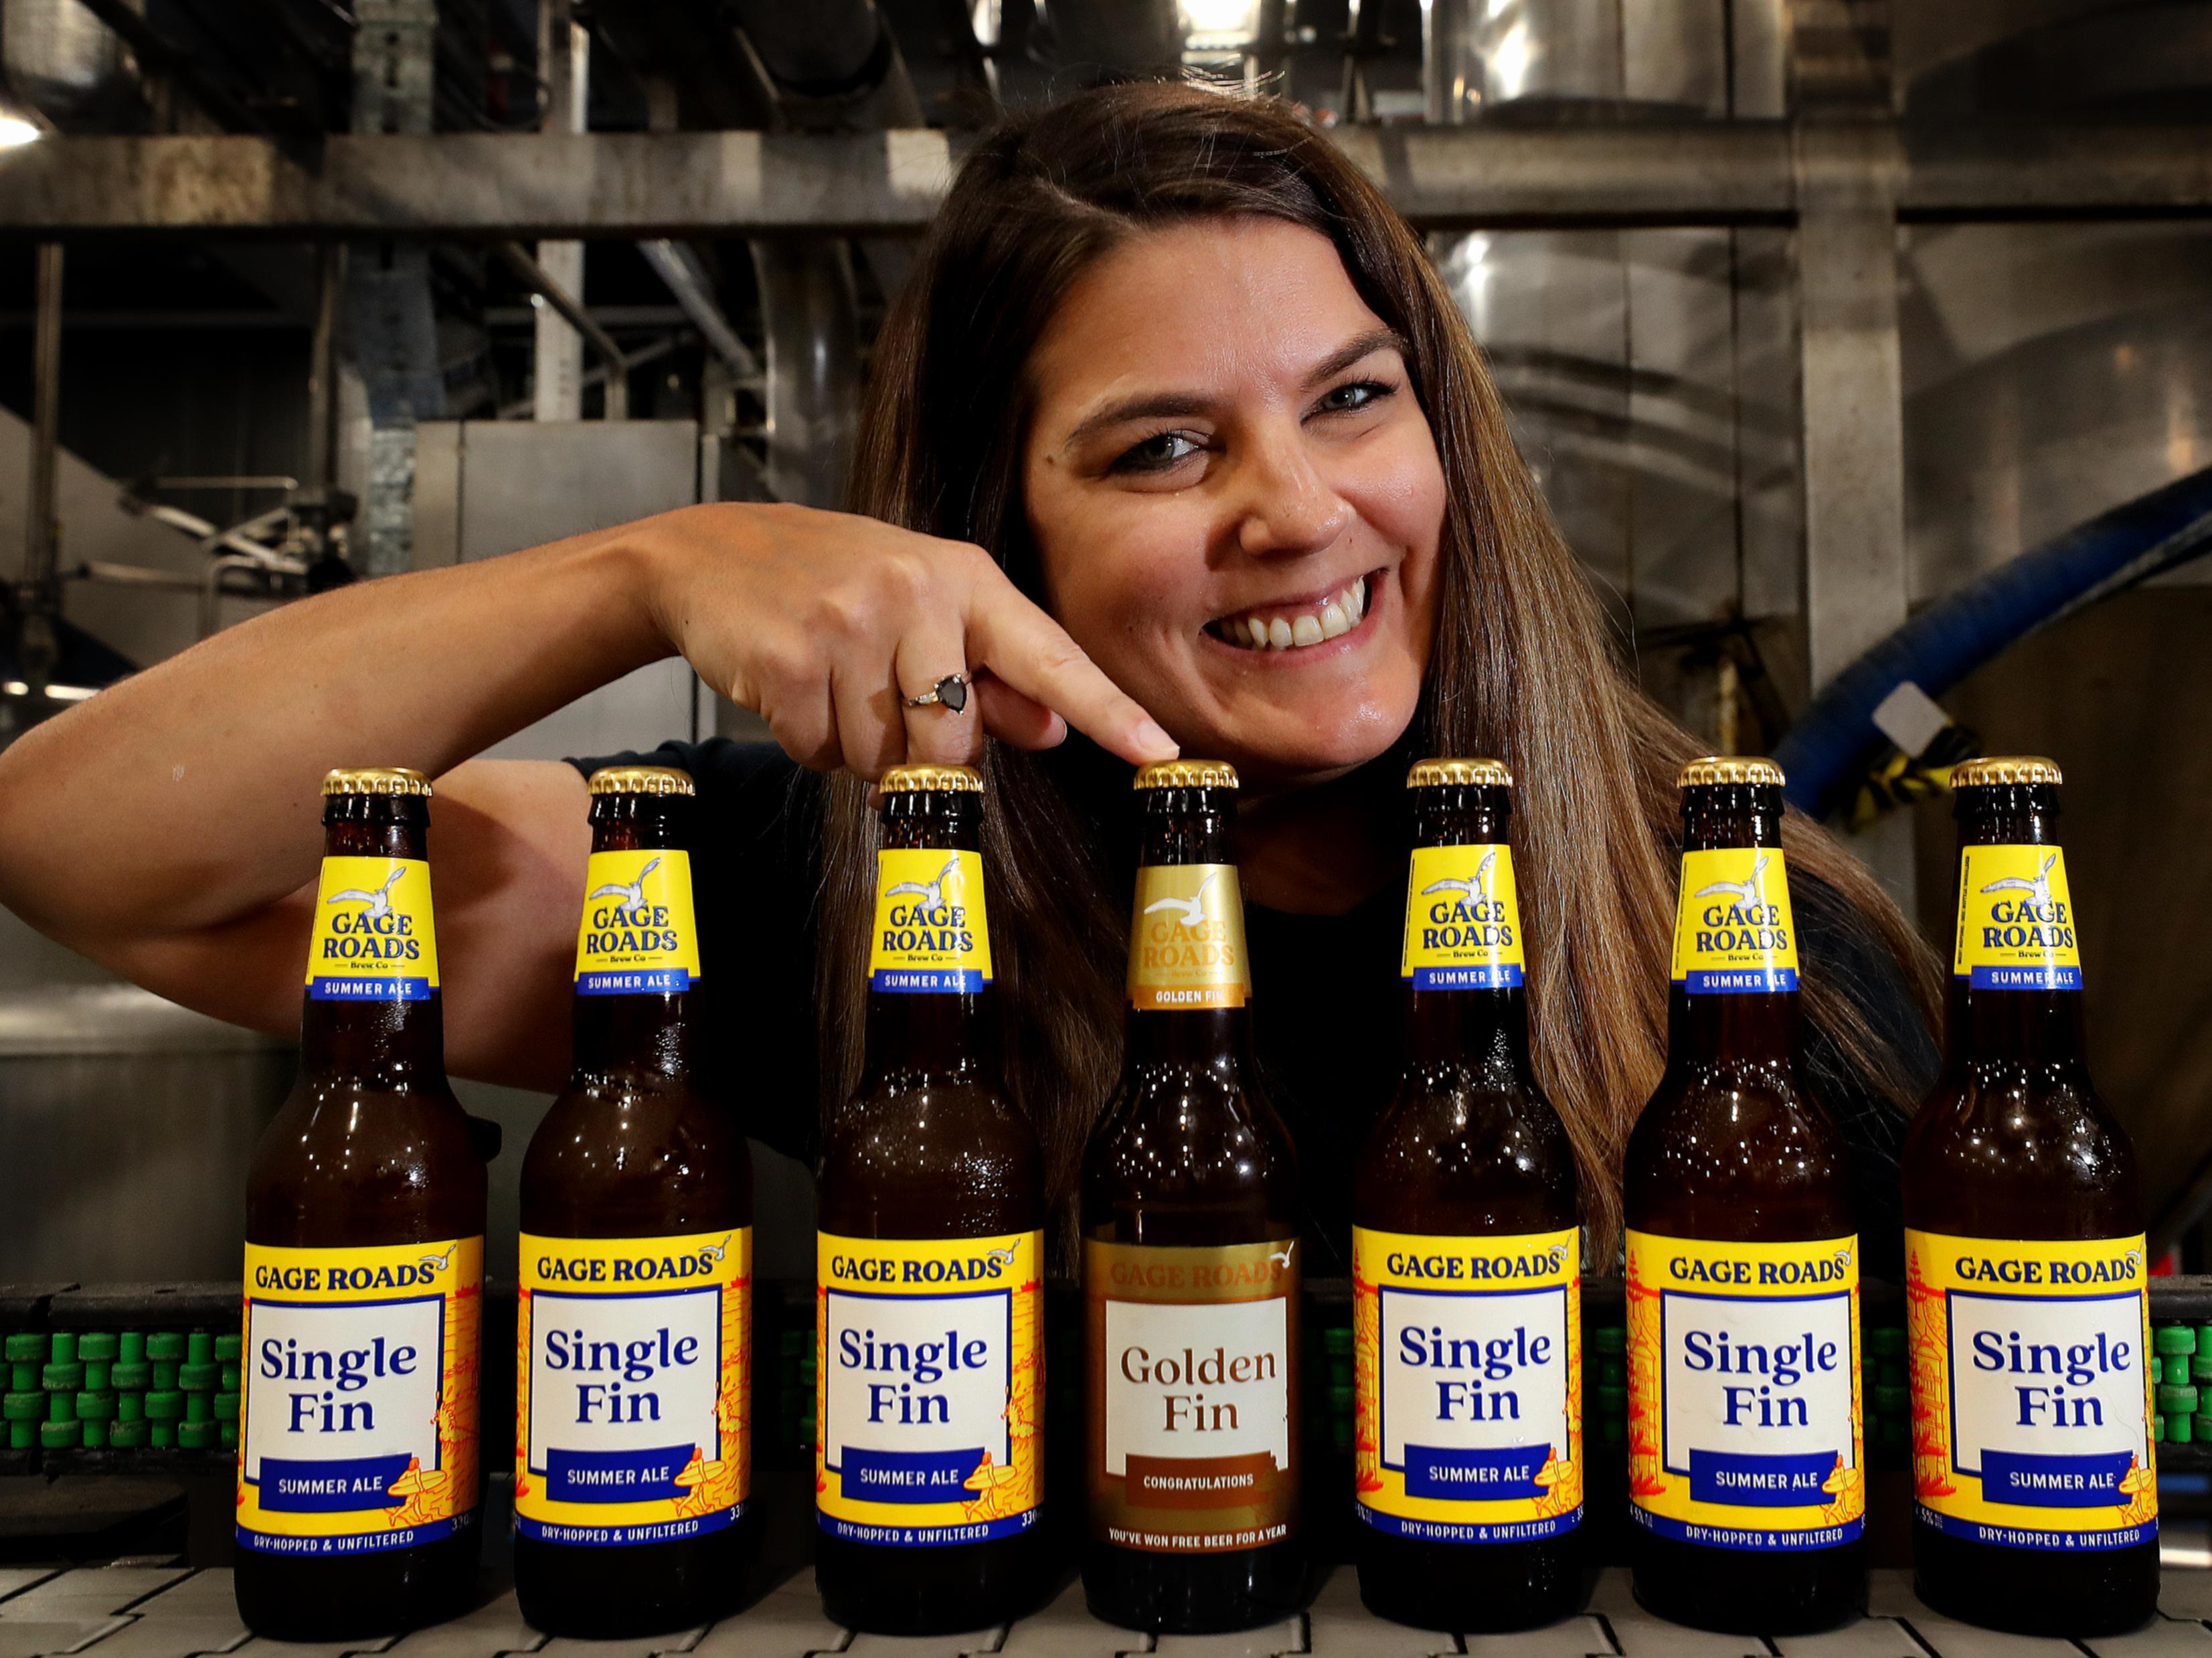 Gage Roads Brewing Company brand leader Bec Lauchlan with a bottle of Golden Fin.